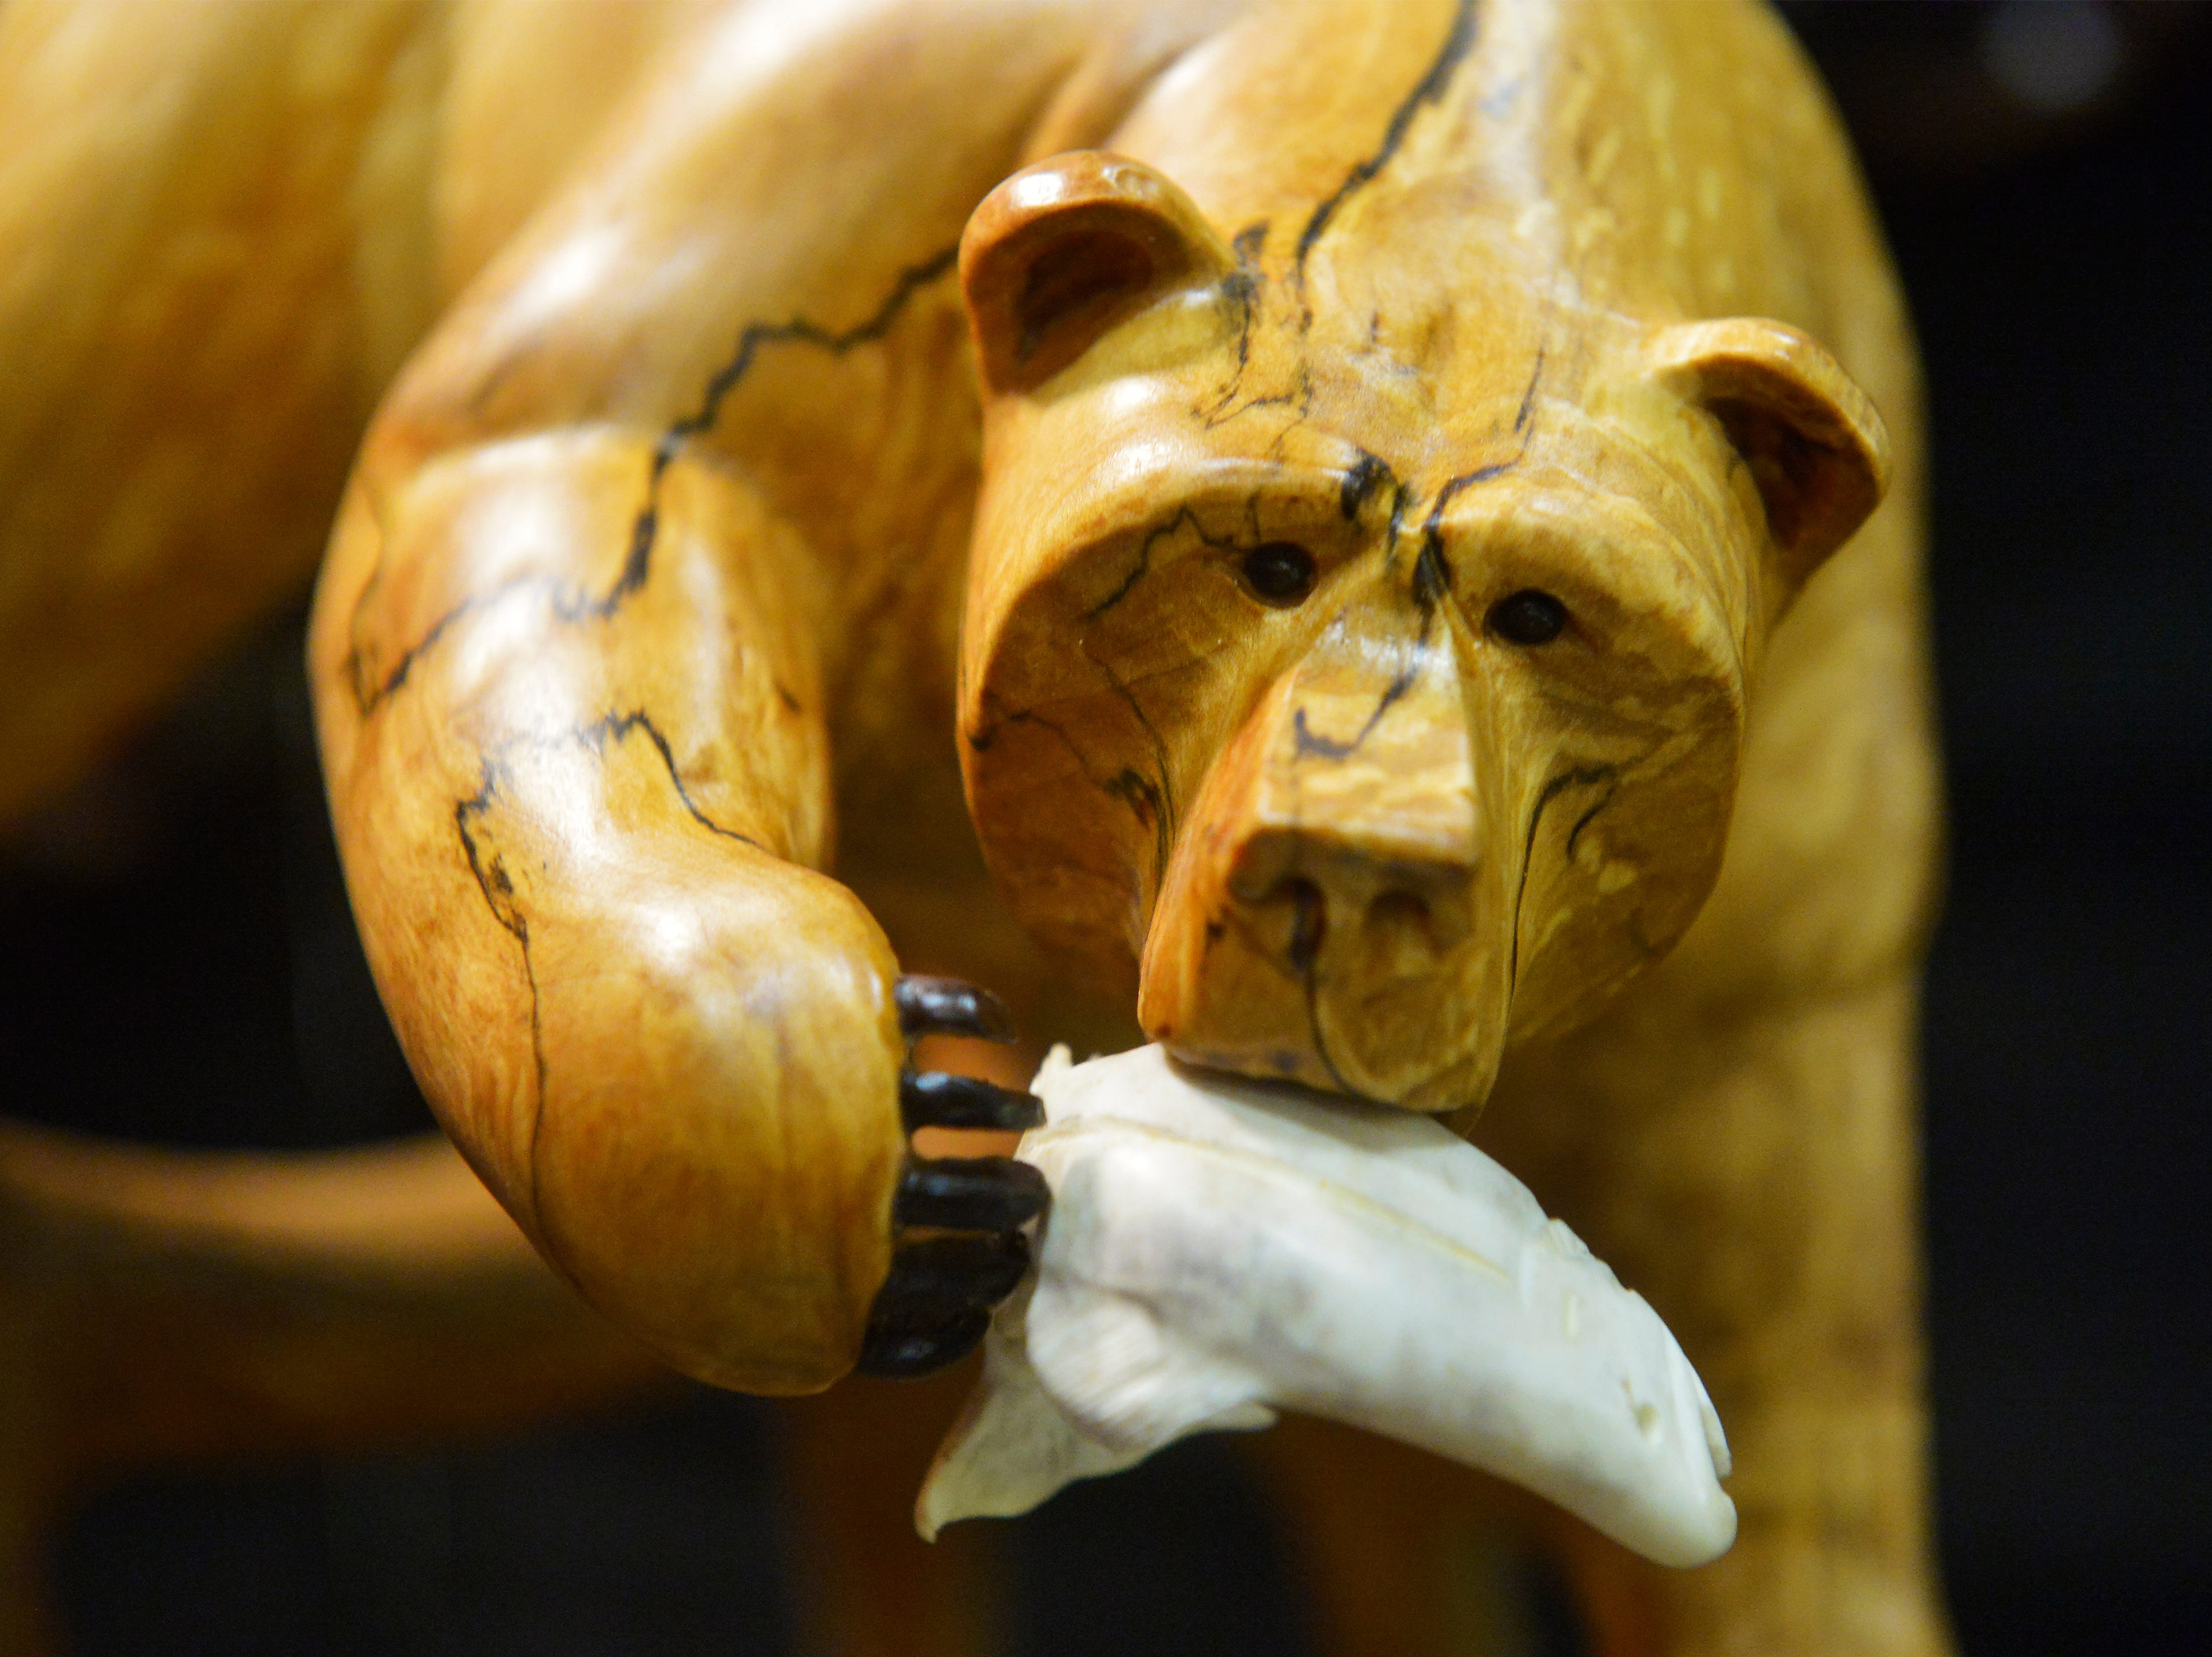 Stephen Fracul used spalding birch burl and white tail deer horn for this carving of a grizzly bear eating salmon on display at the Great Western Living and Design Show in the Four Seasons Arena on Friday.